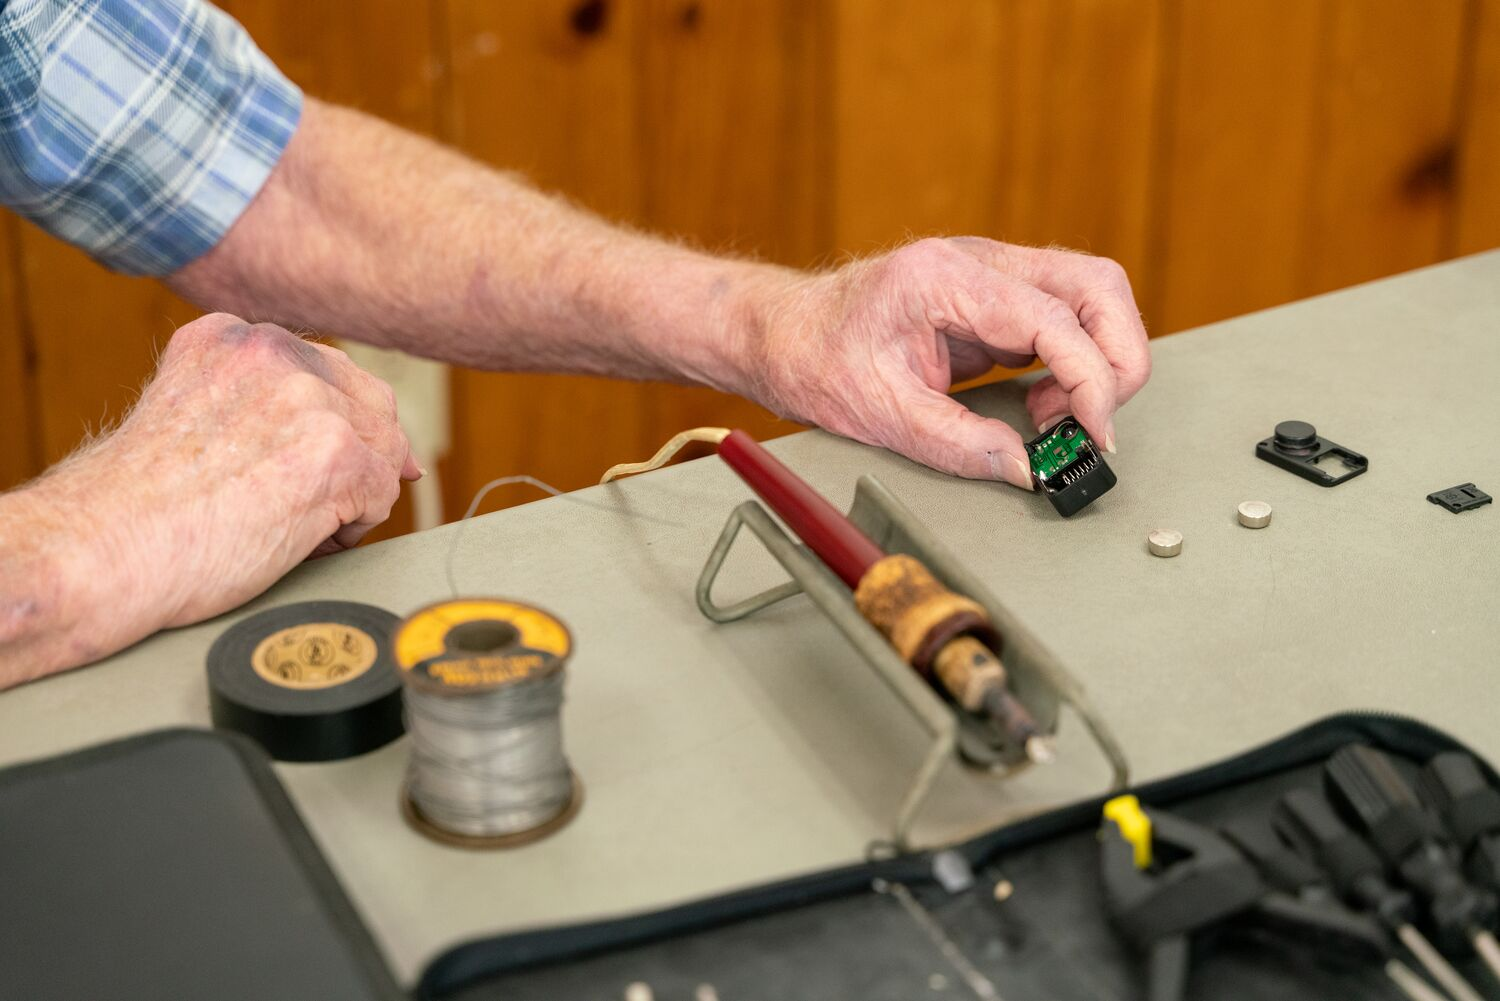 Man's hands holding a small electrical component at a repair cafe.